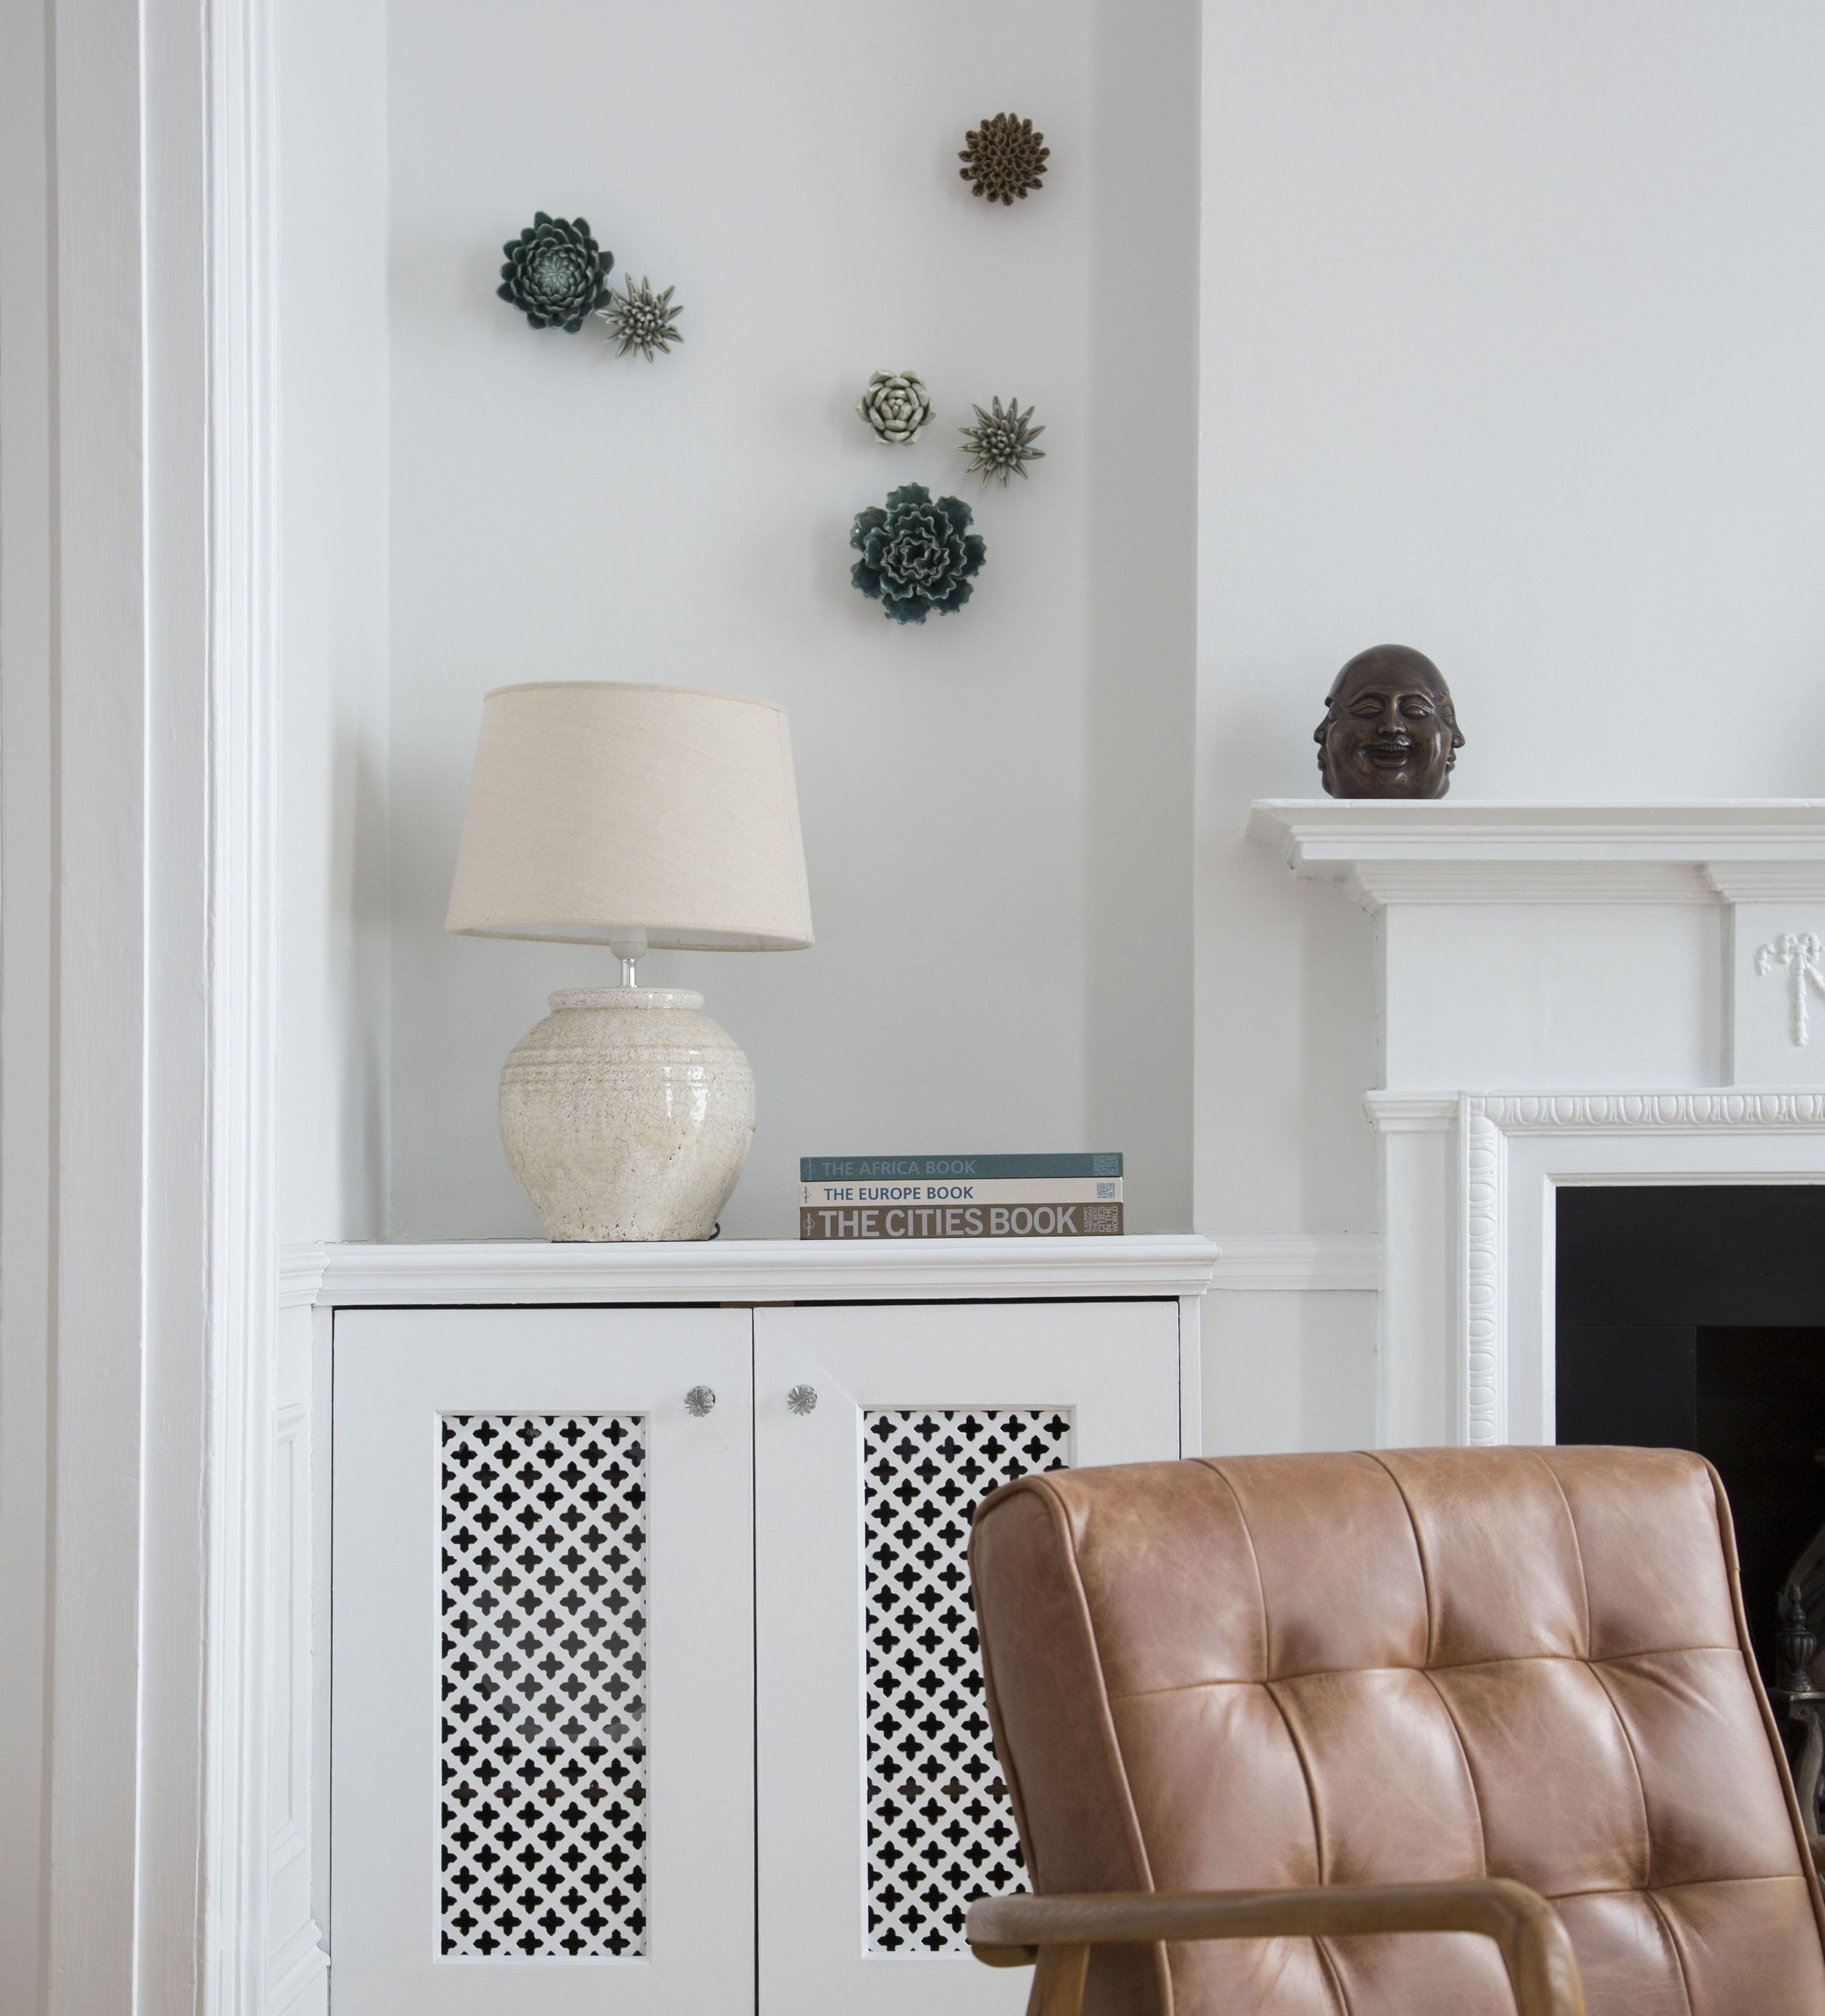 Corner by the fireplace - after